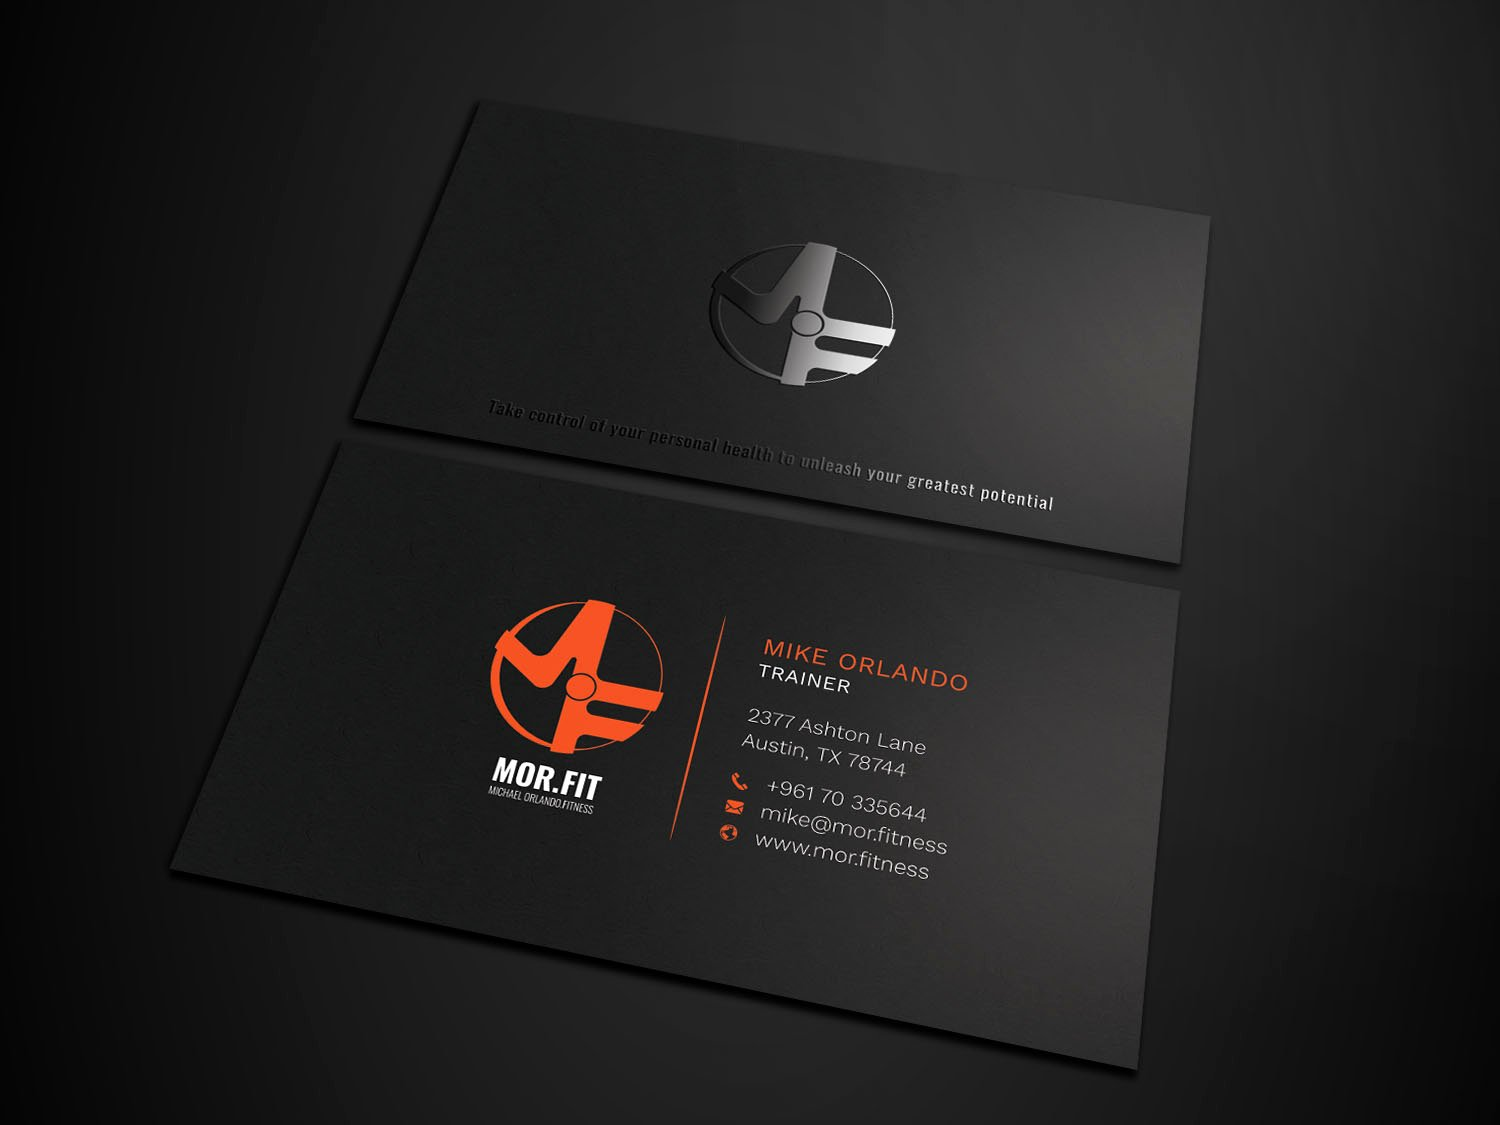 Personal Trainer Business Cards Awesome Professional Modern Personal Trainer Business Card Design for Michael orlando Fitness by